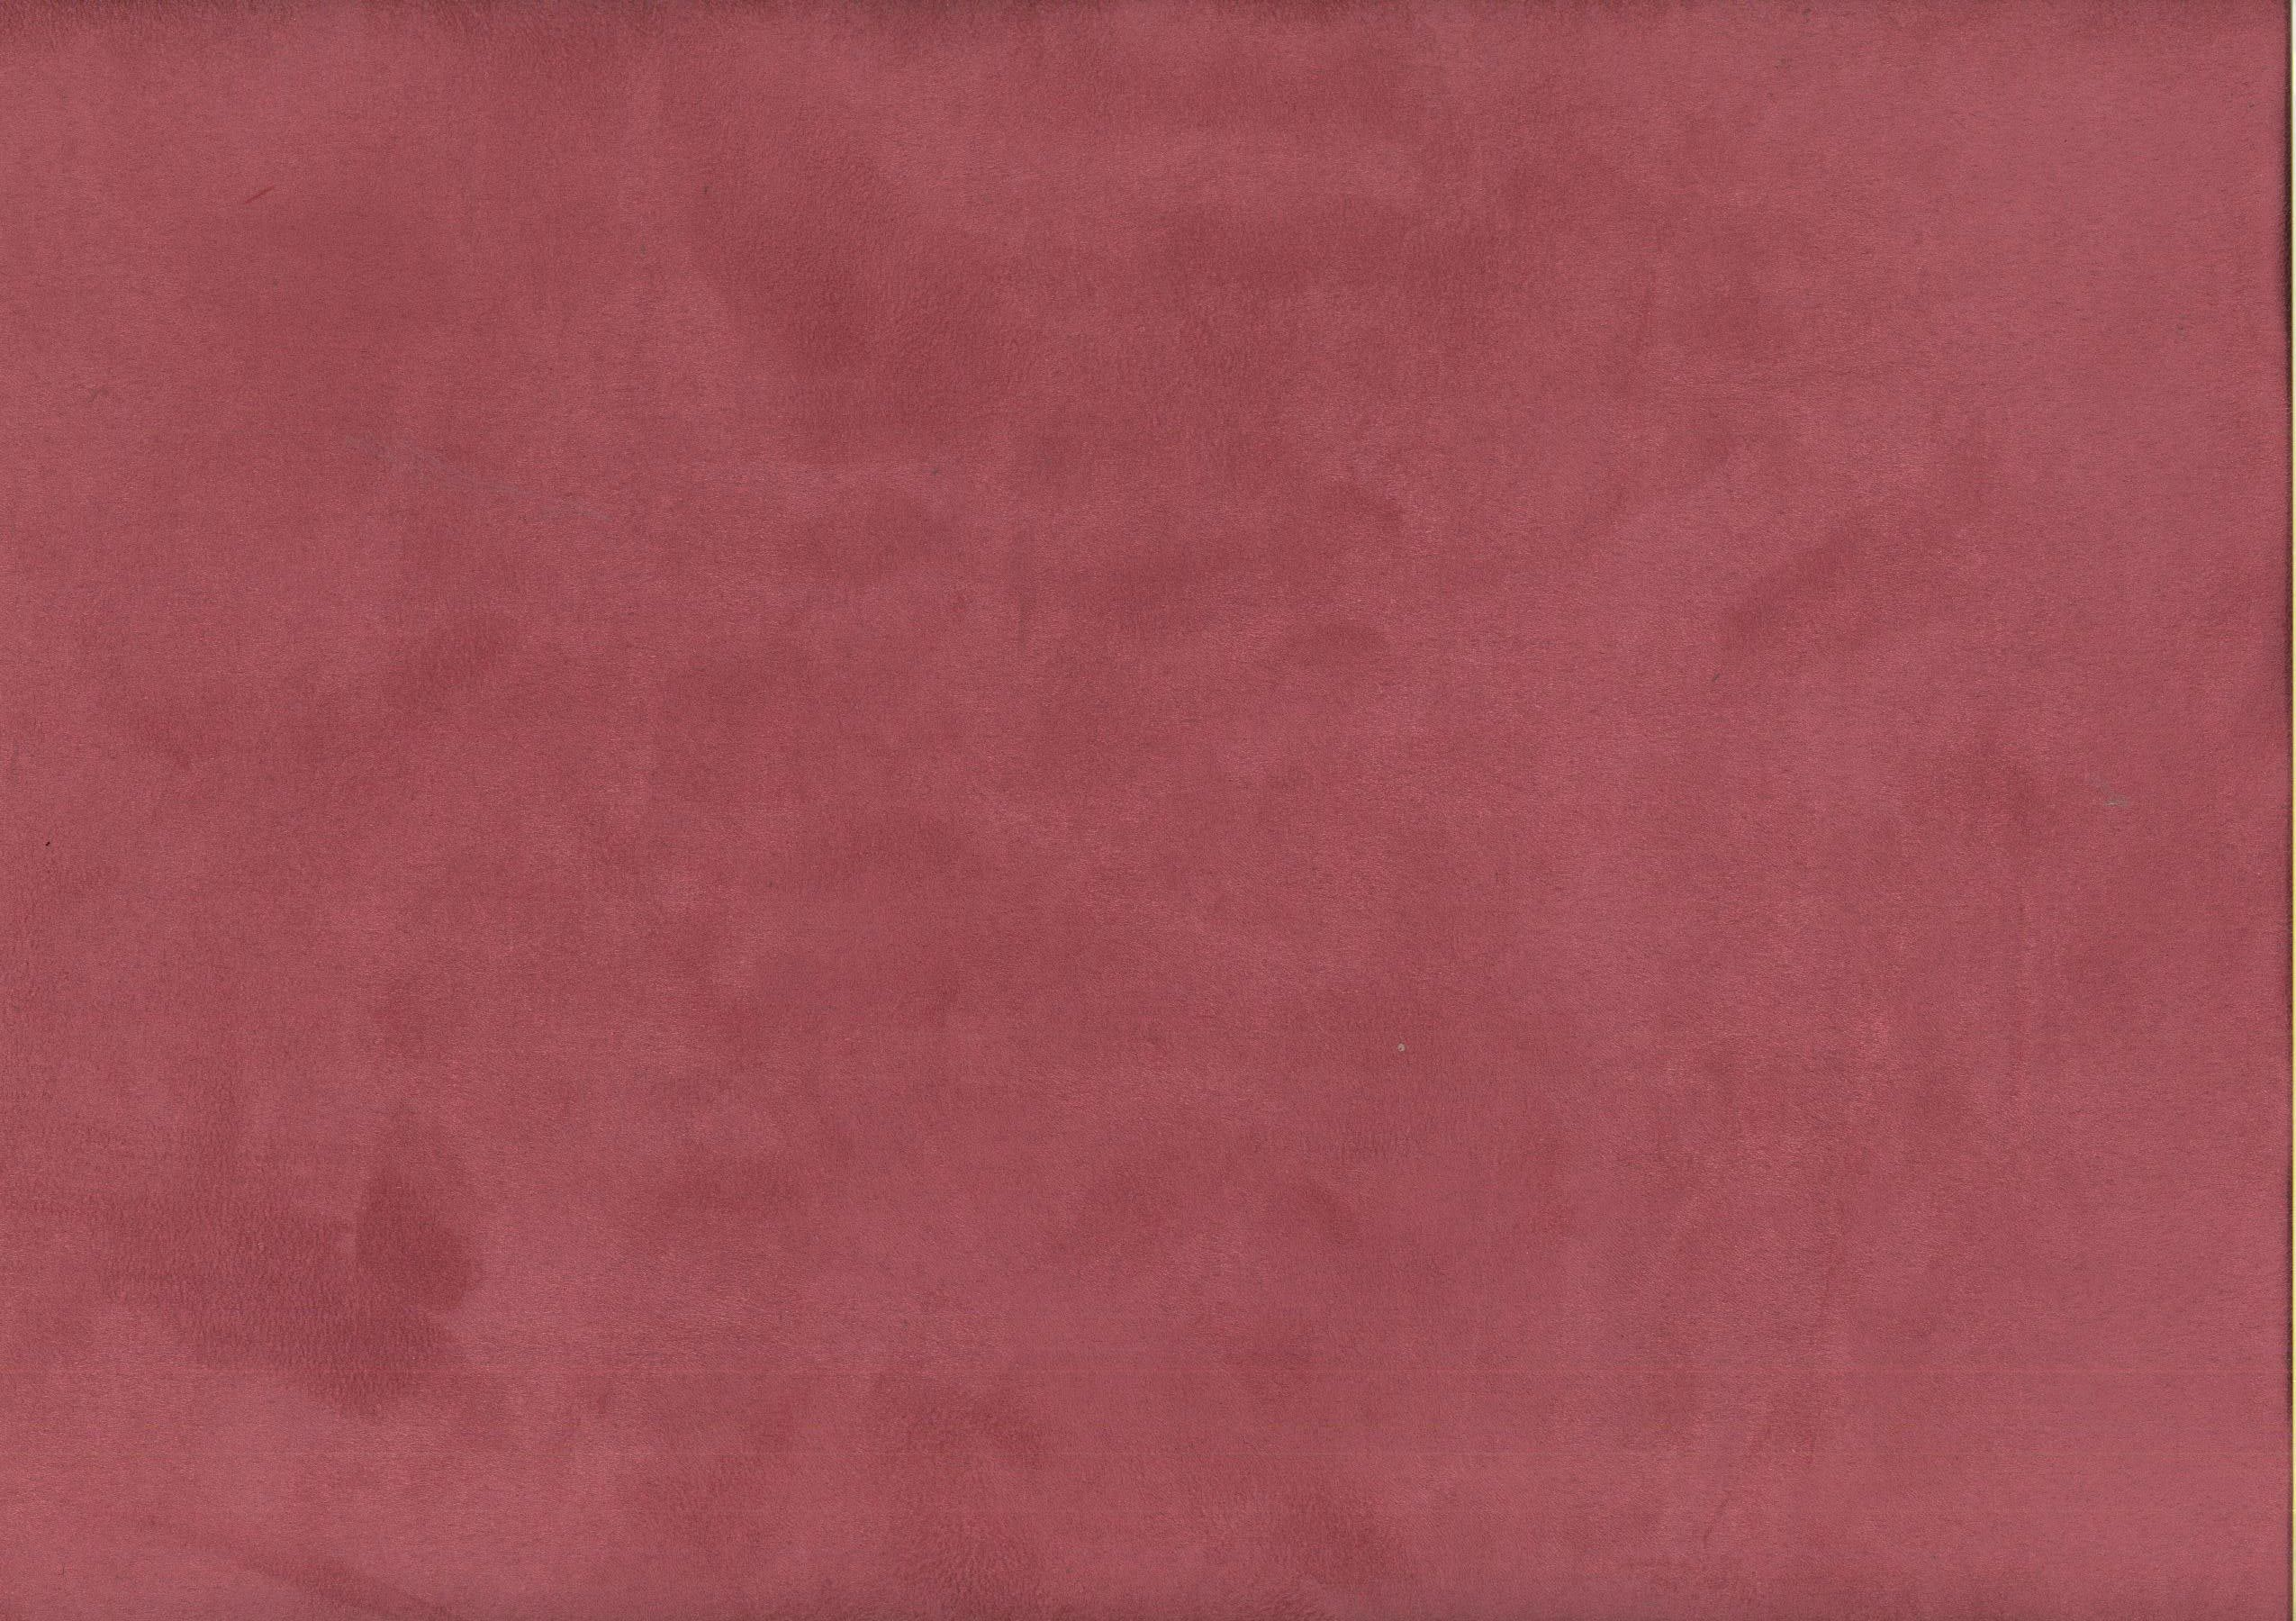 Perfect Finish Upholstery Passion Suede Dusty Rose 11 99 Yd Item 832091 All The